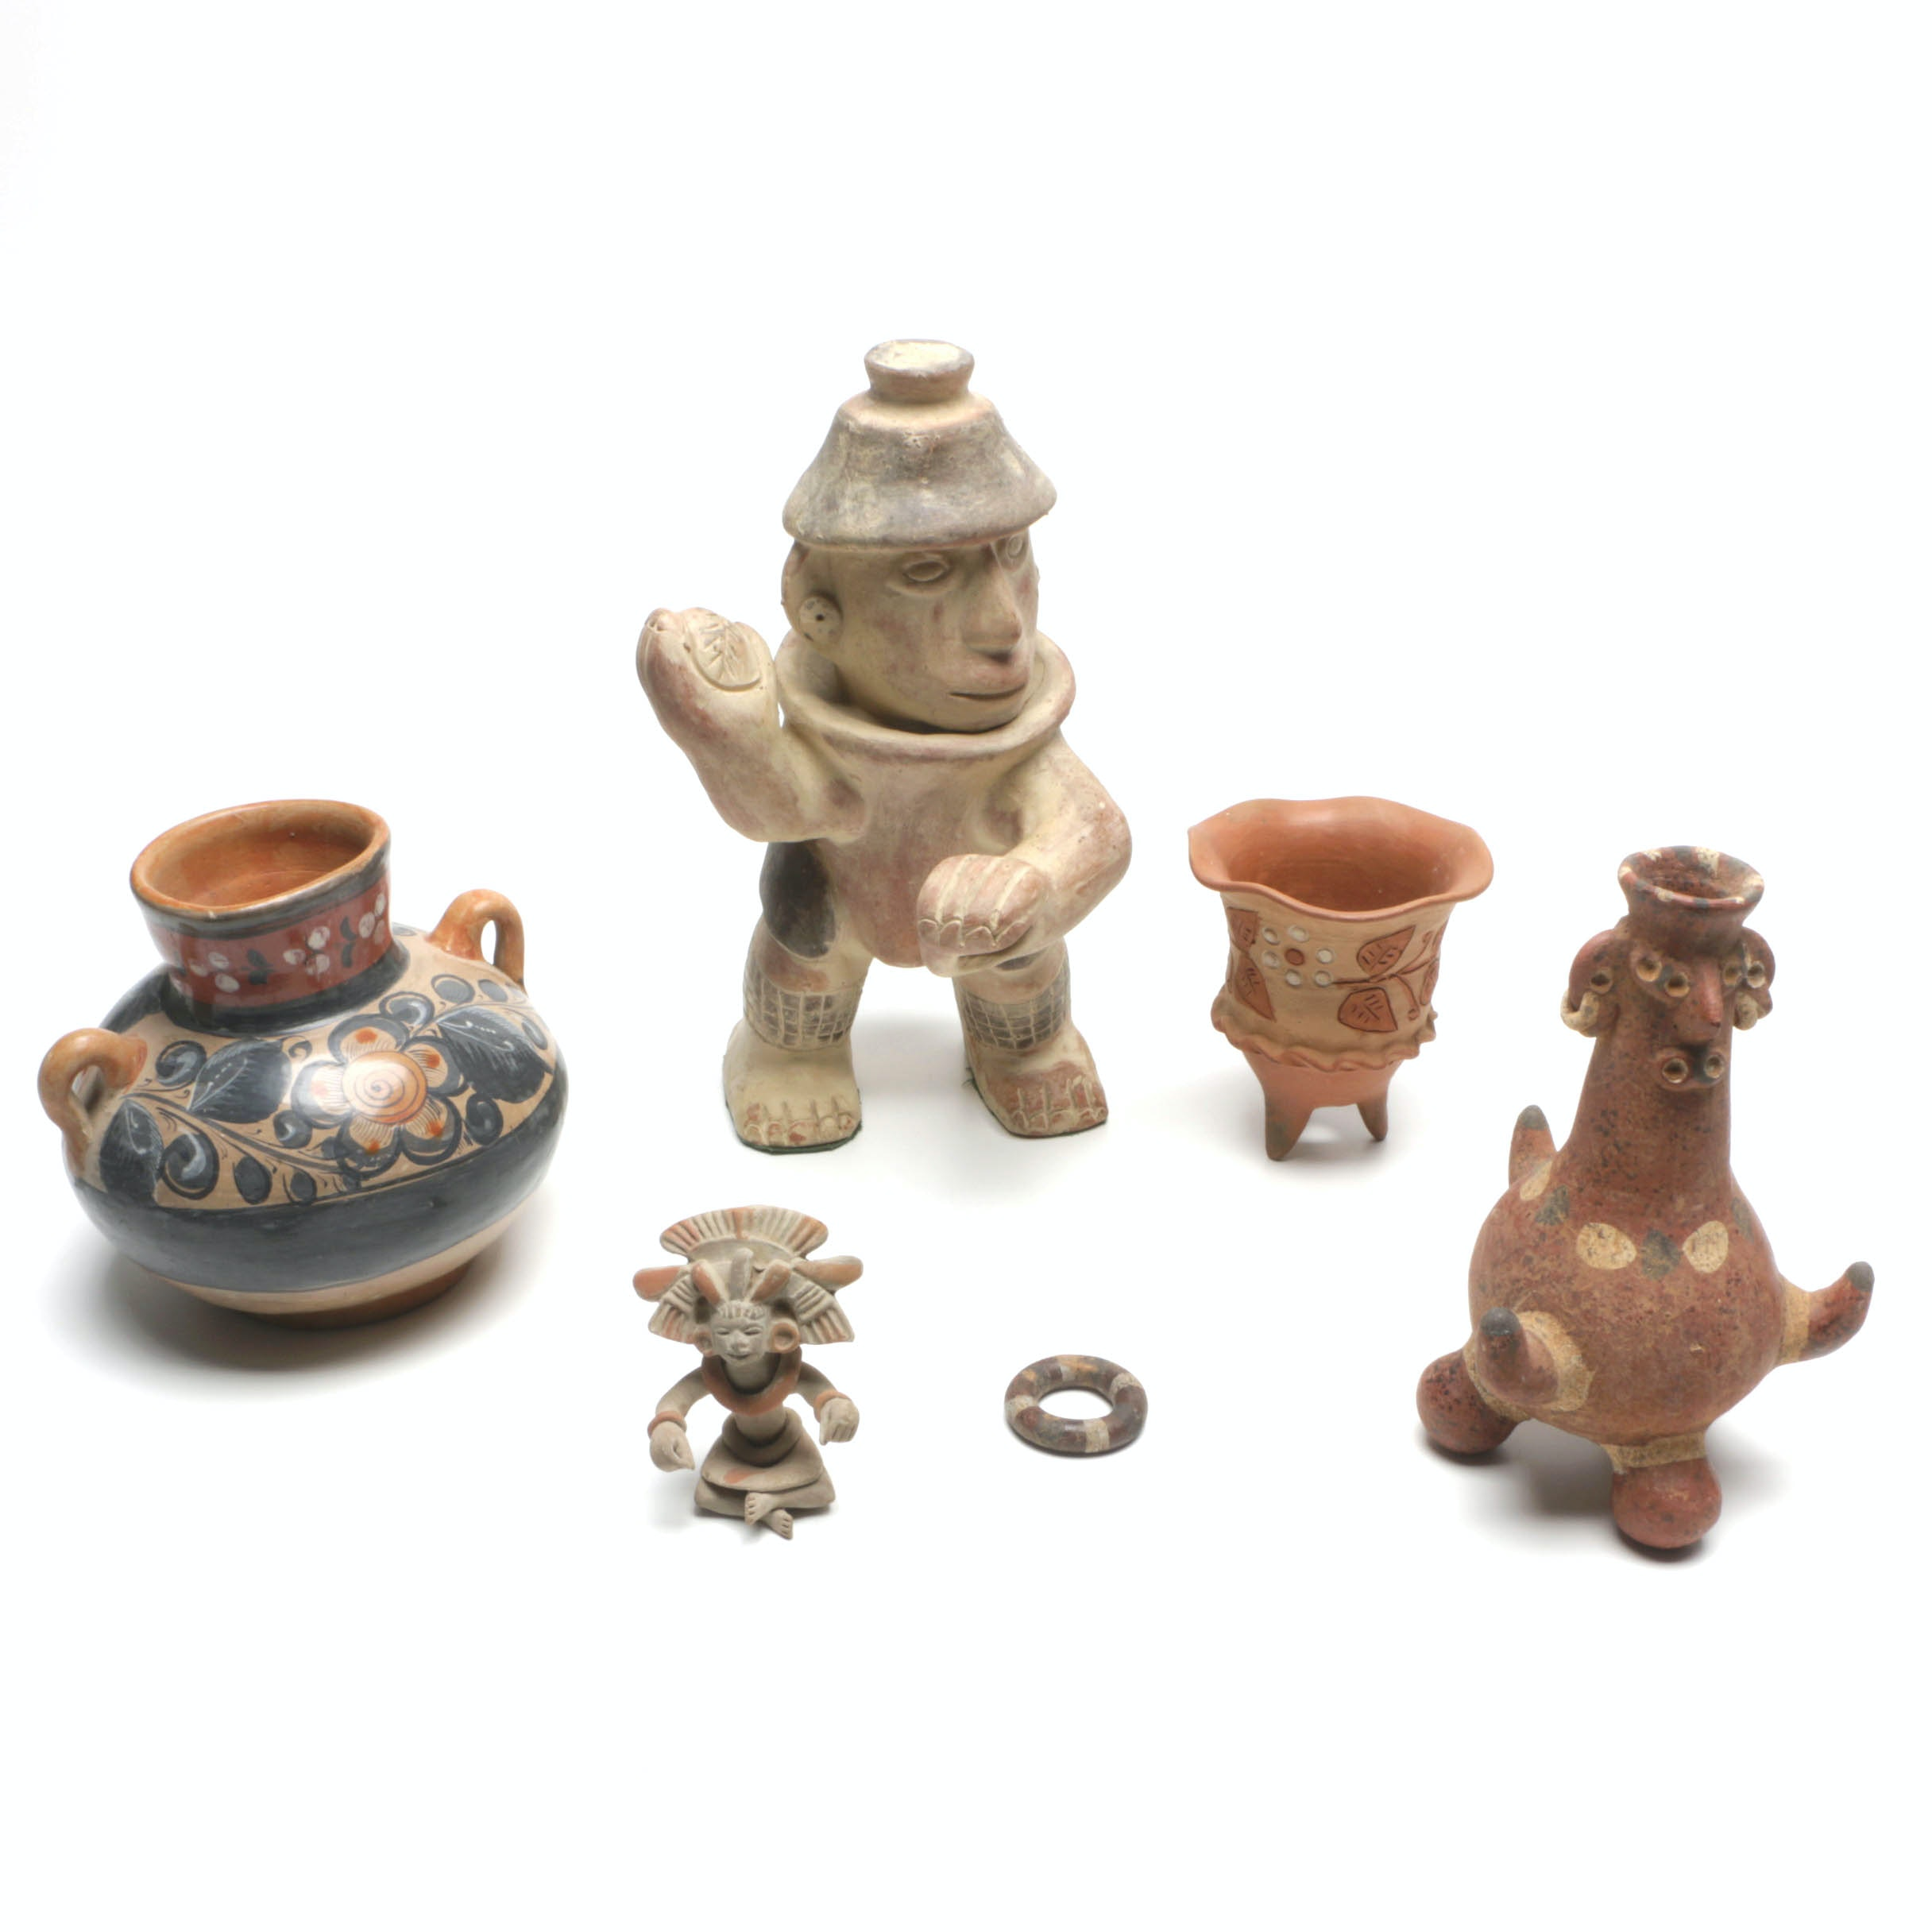 Mexican Pottery Including a Vase, Nayarit Style Figure and Mayan Style Figure